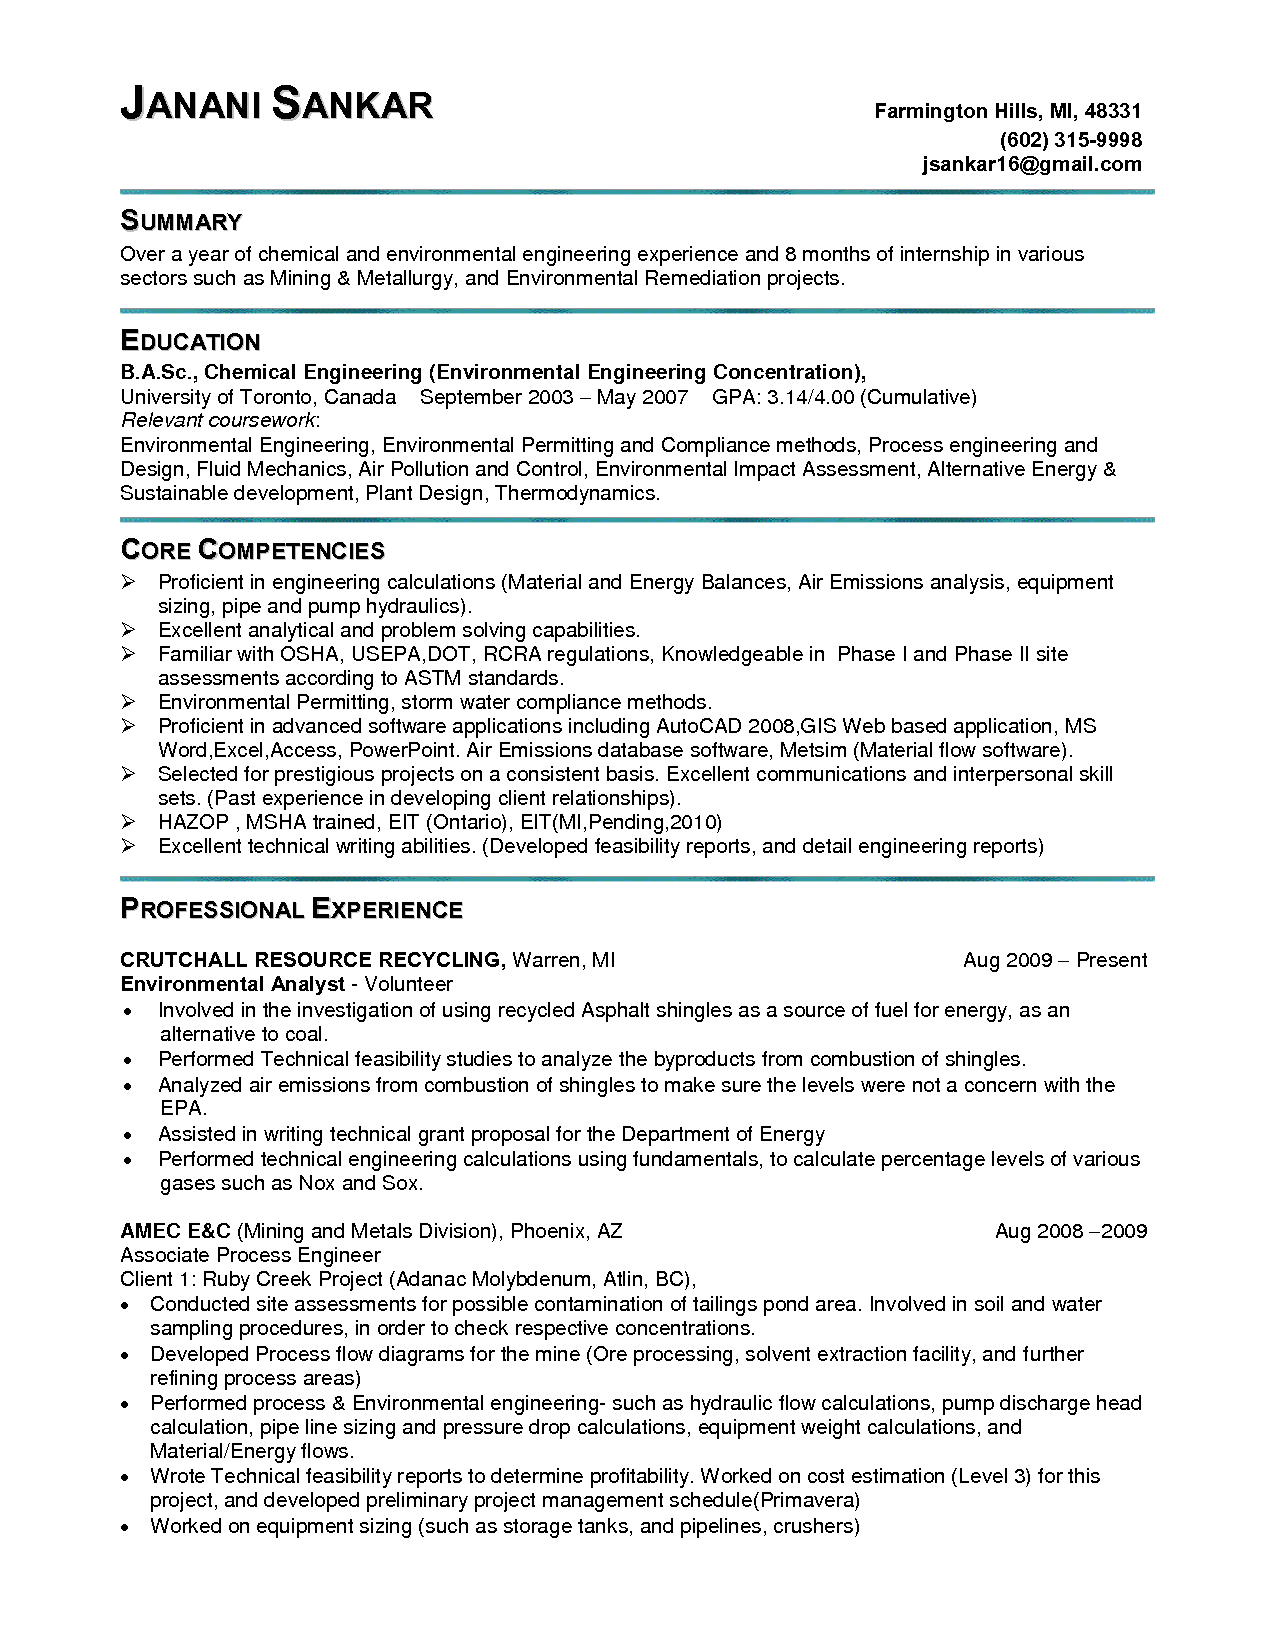 Resume Samples Job Resume Samples Resume Examples Resume Cover Letter Examples